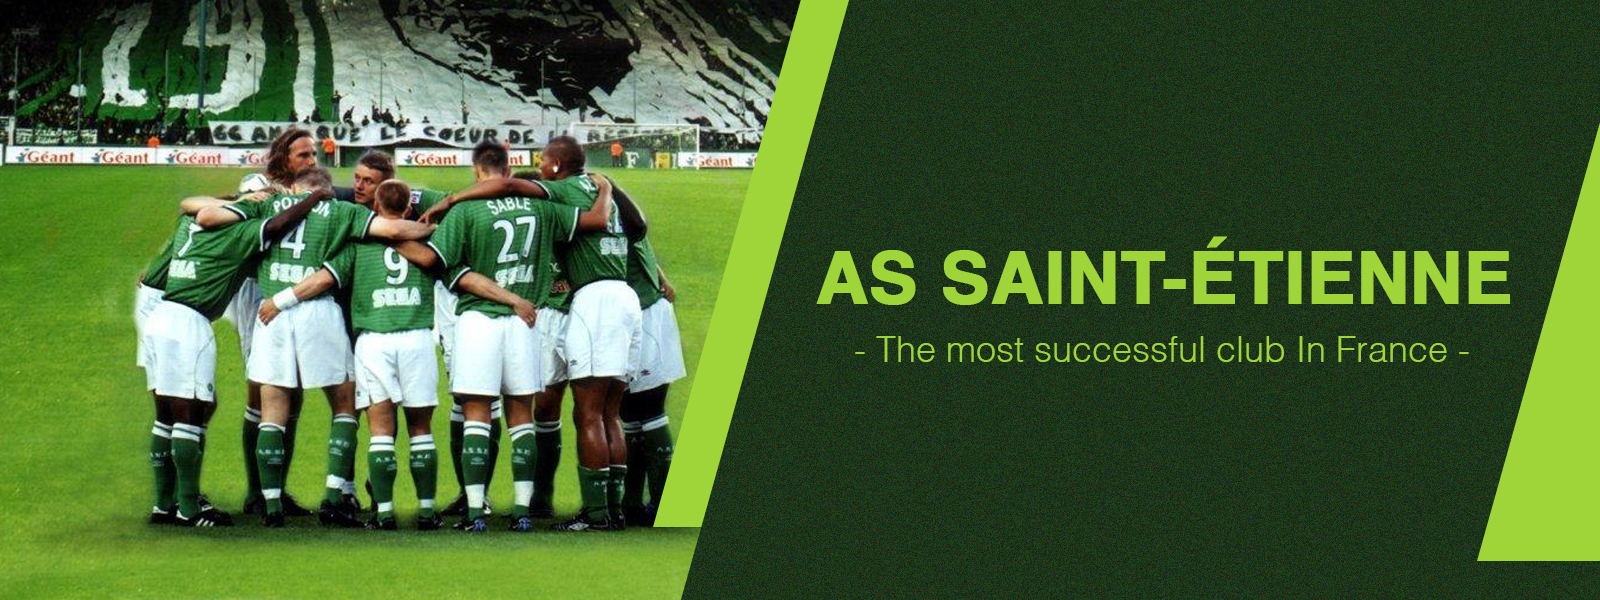 AS Saint-Etienne - The Most Successful Club In France